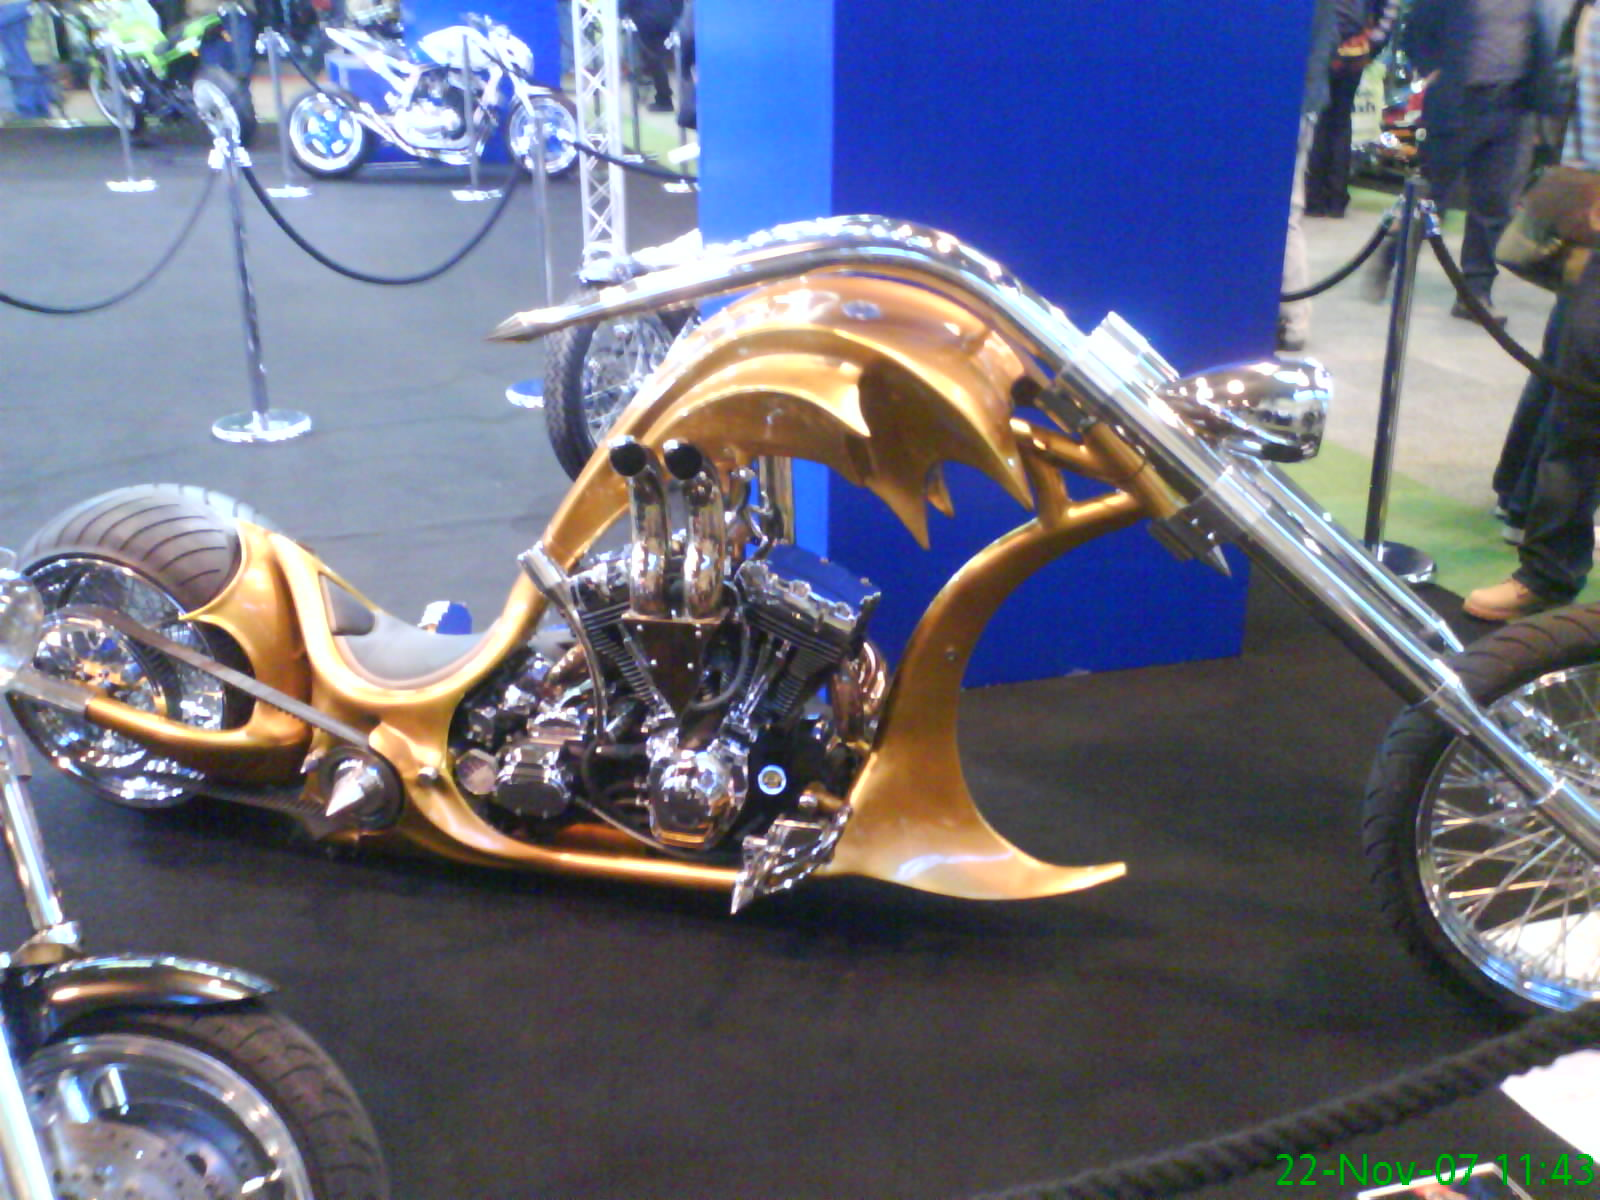 Motorcycle Custom: Auto Zone For Speed Lovers: Modified Bikes